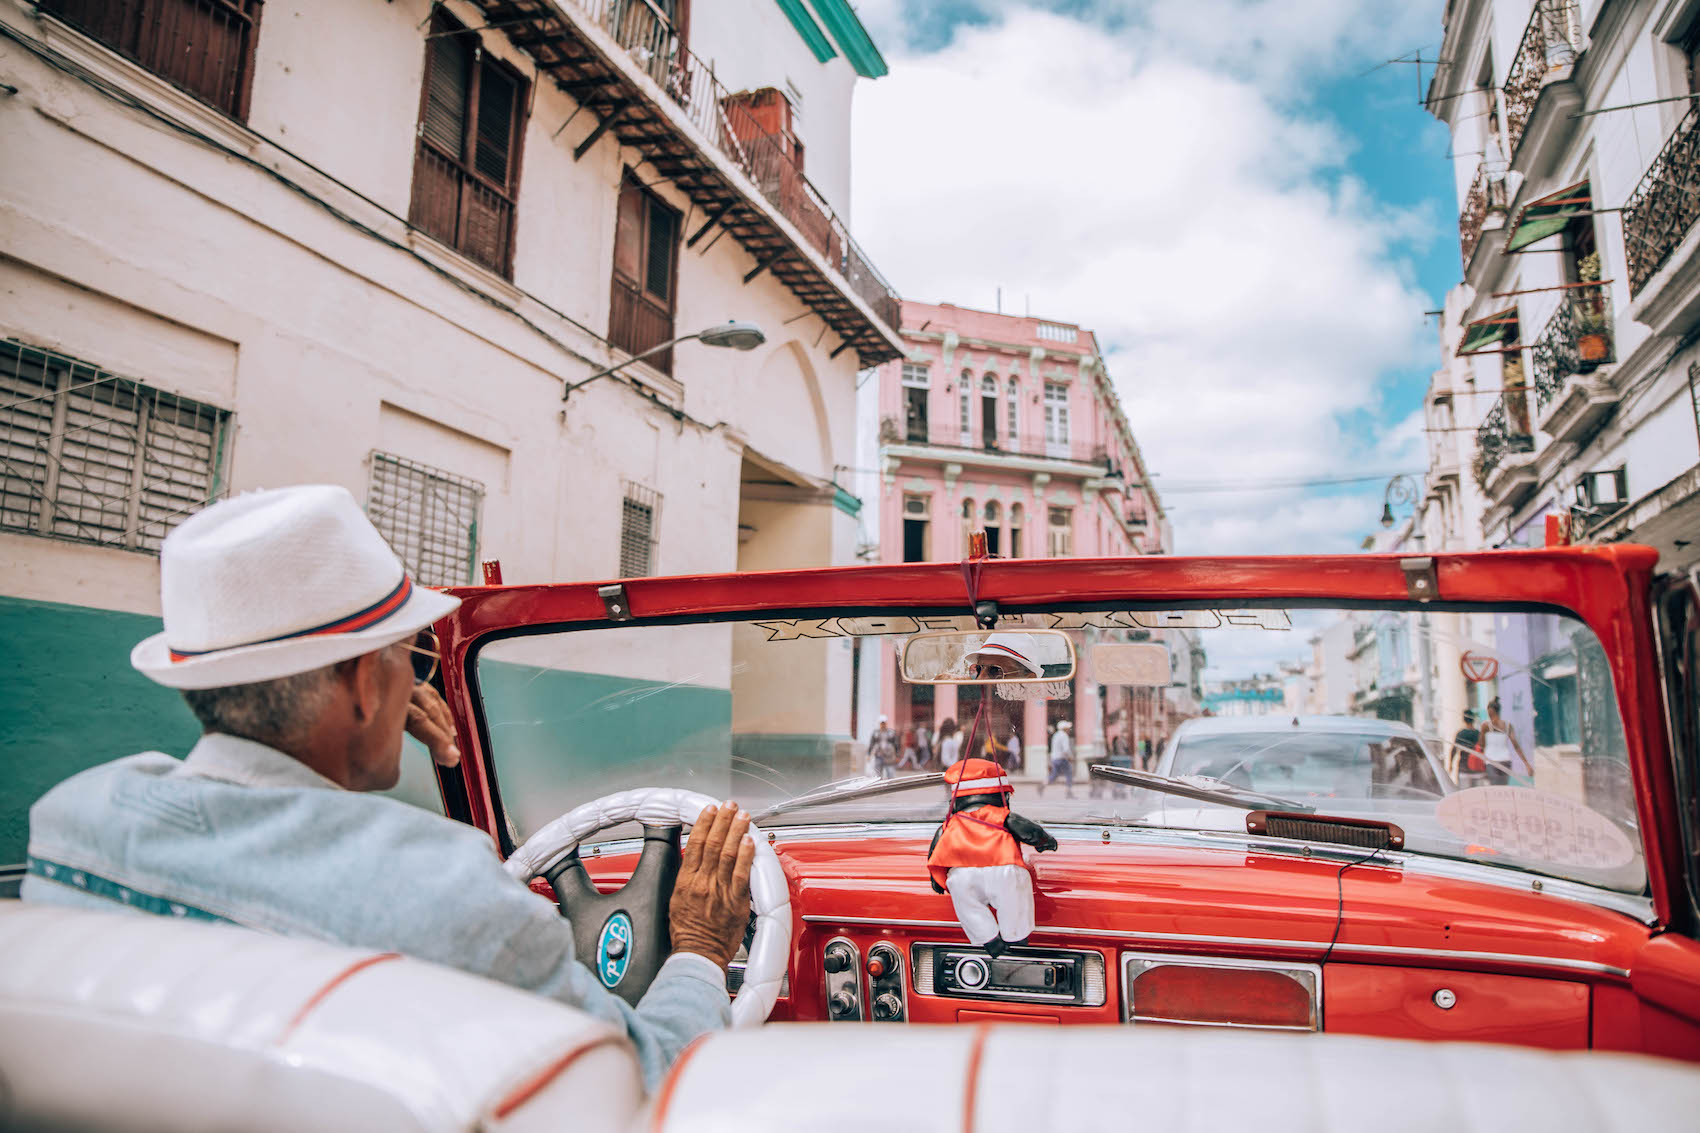 misconceptions-about-cuba-travel-10.jpeg